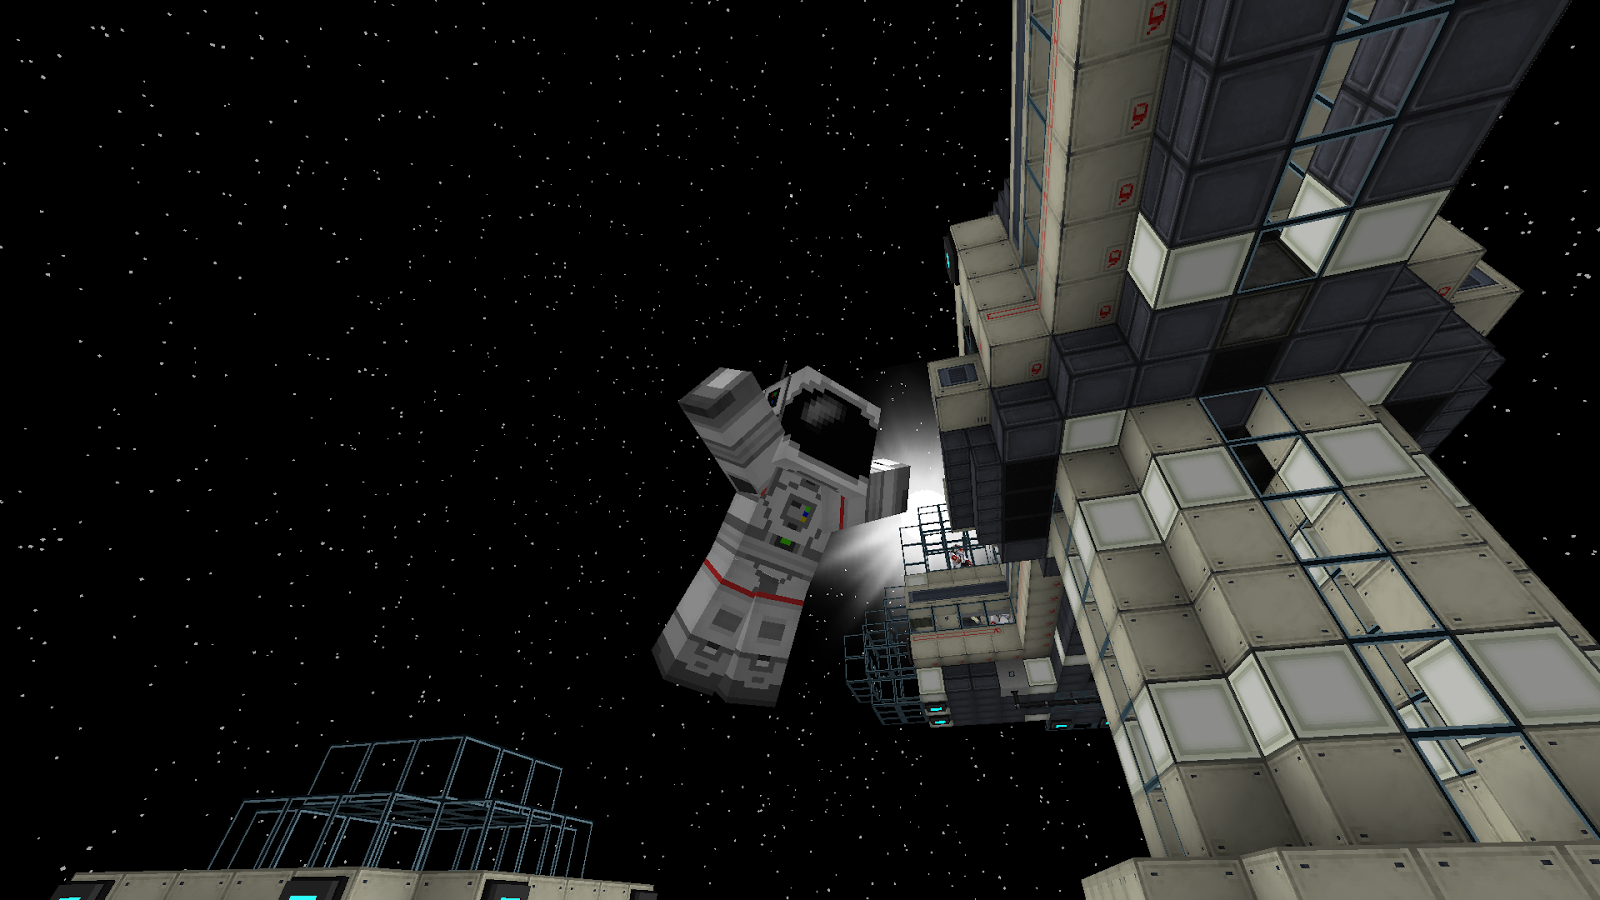 galacticraft space station - photo #24